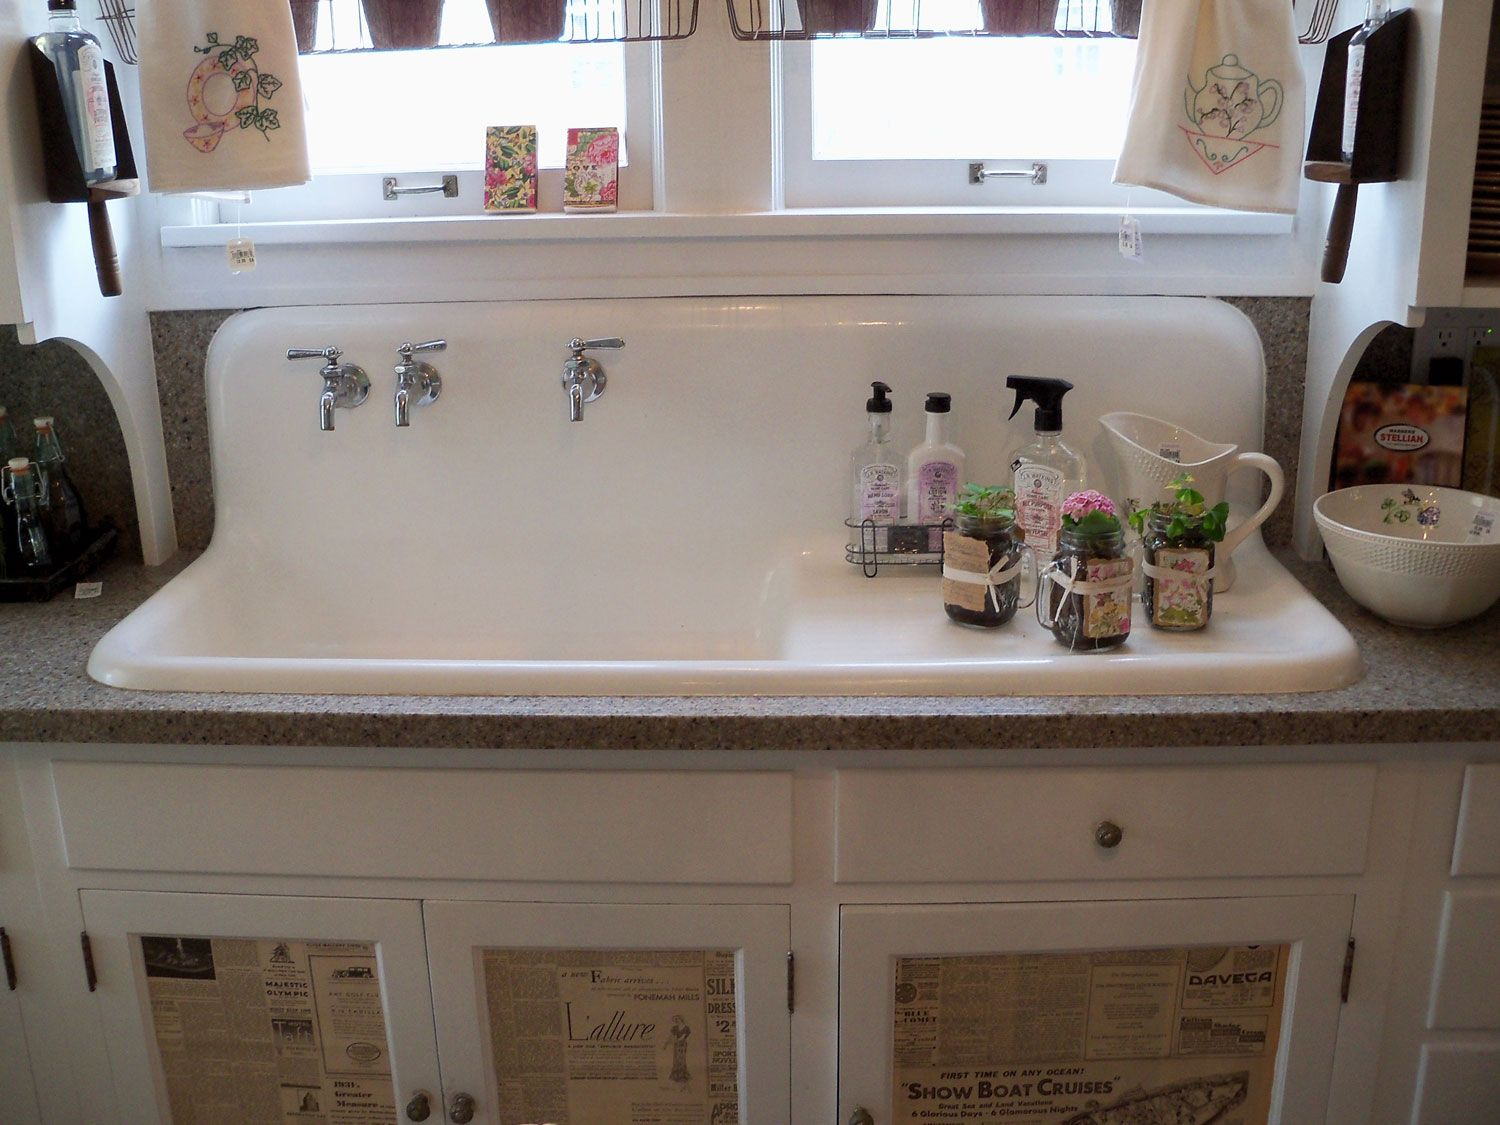 Old+Farmhouse+Kitchens The old farm sink and check out